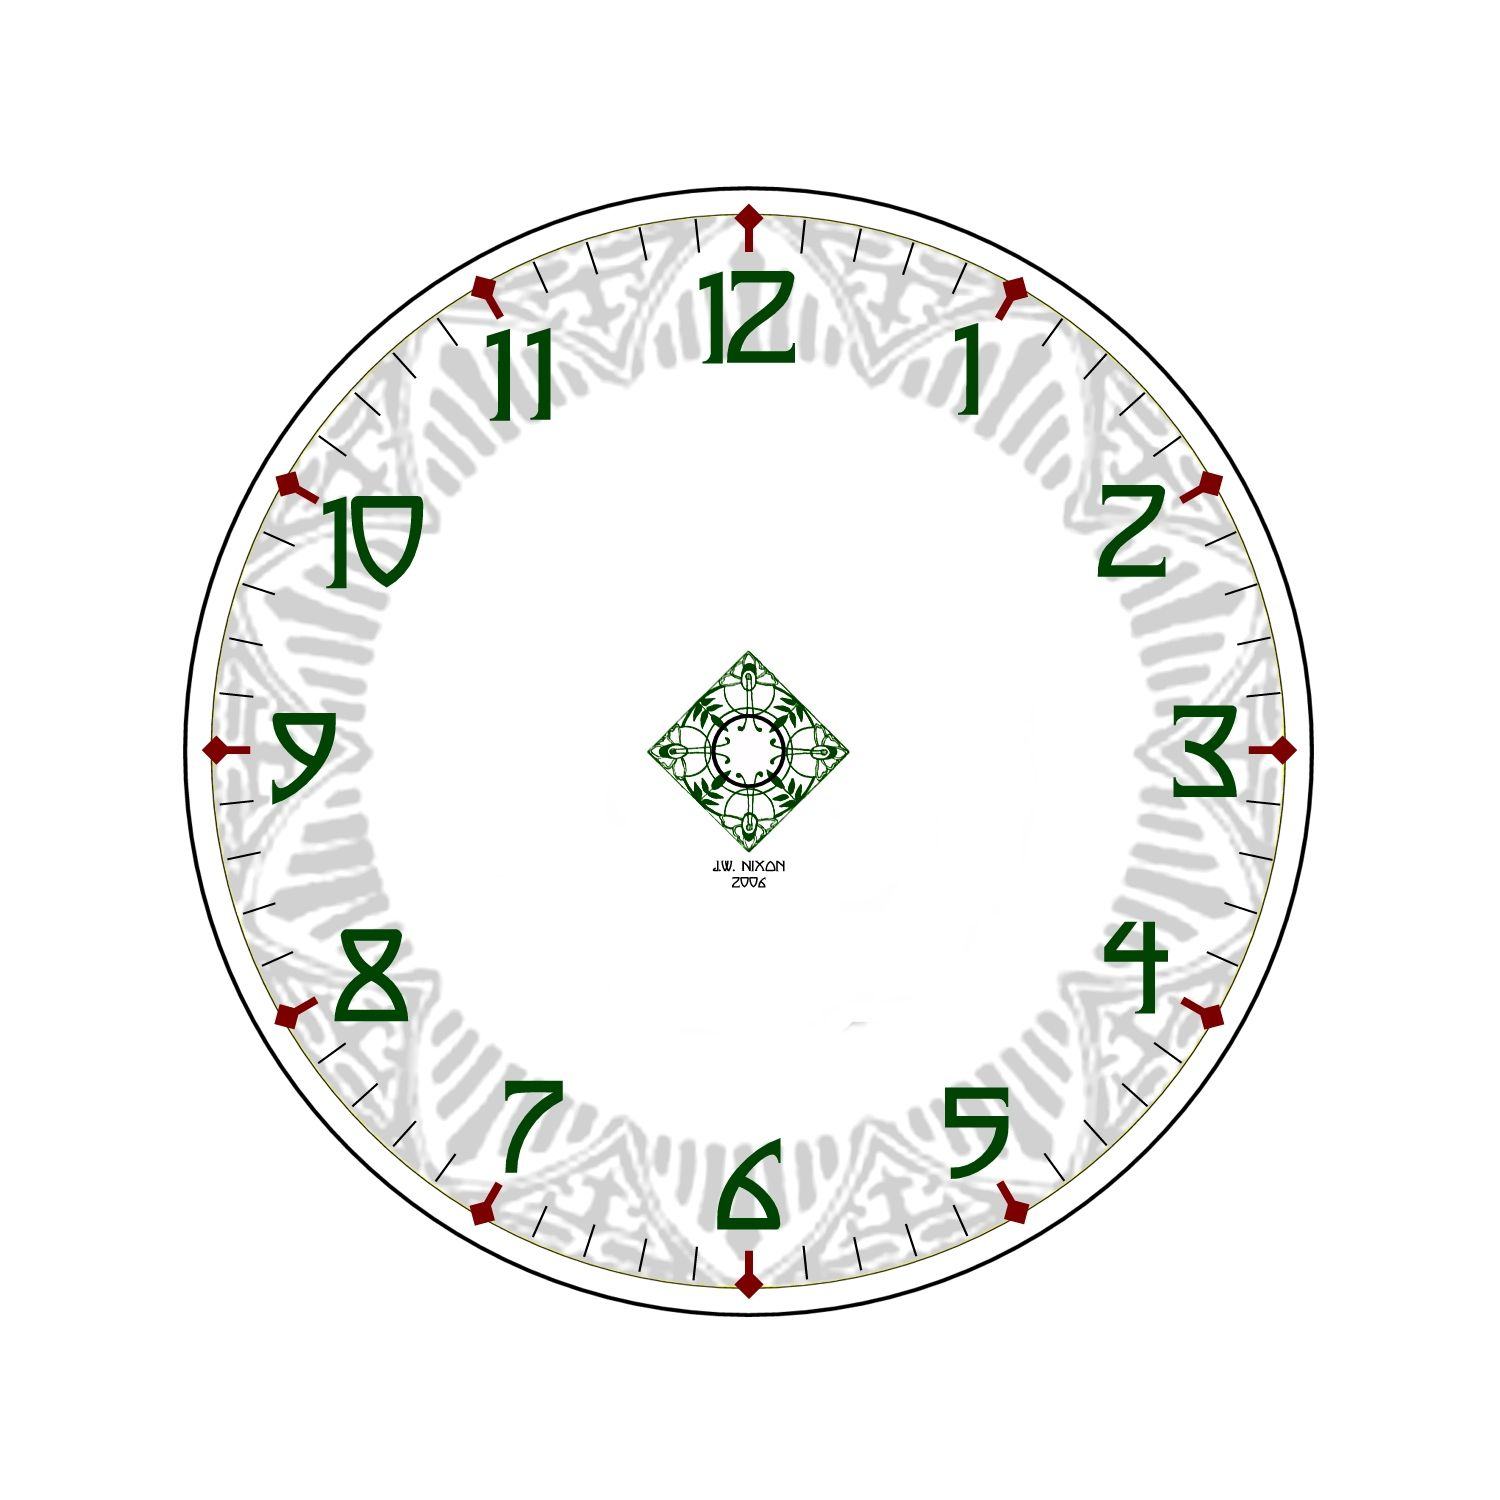 41+ Clock face coloring page ideas in 2021